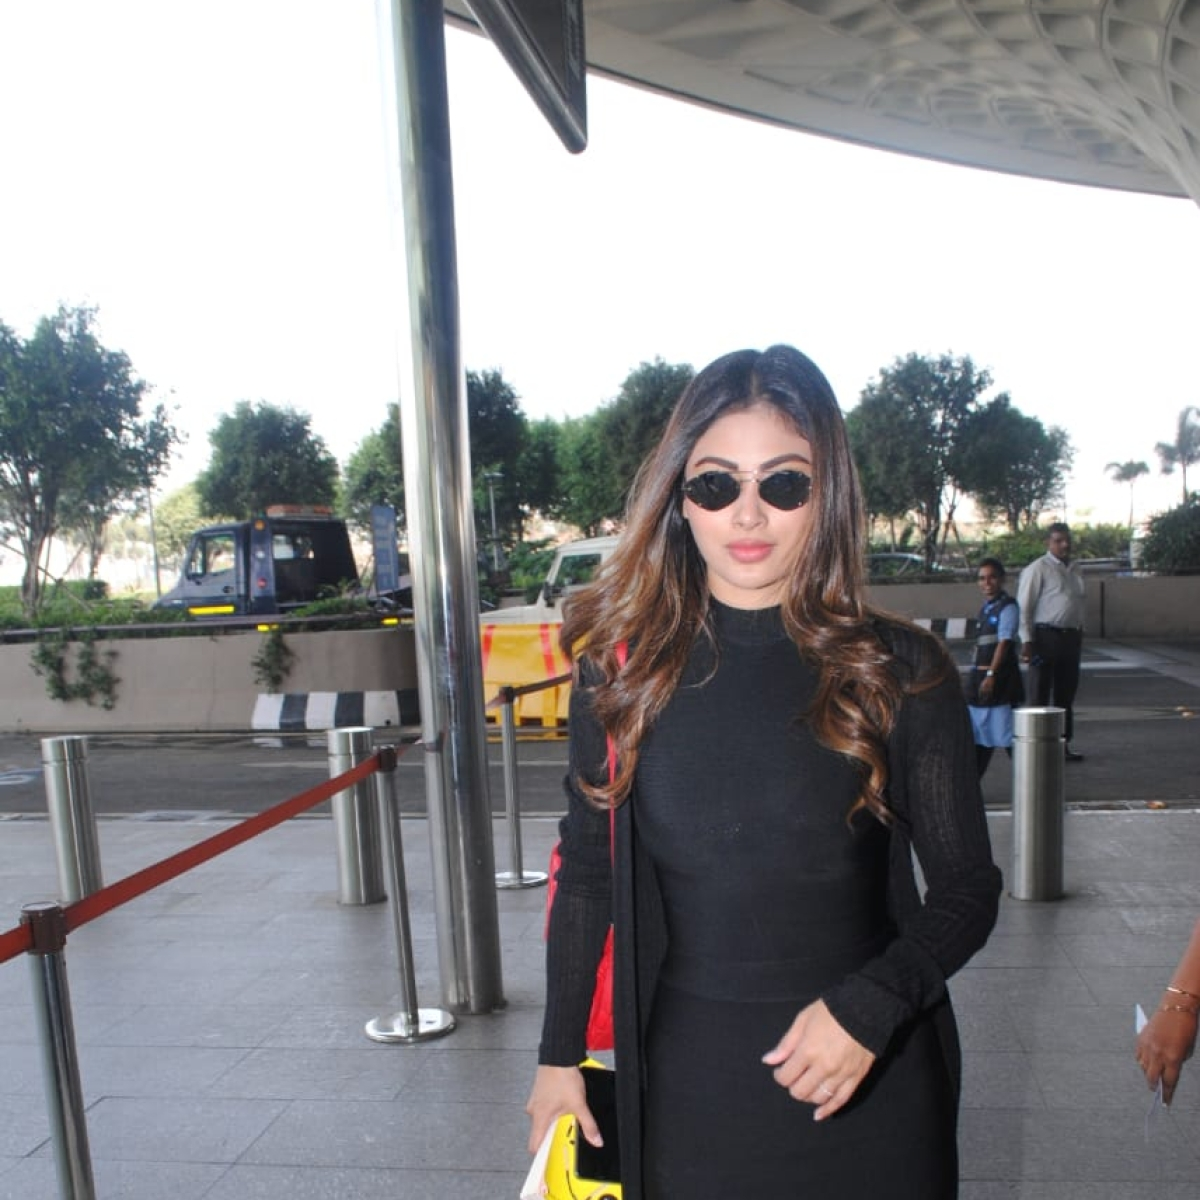 Mouni Roy stranded in Abu Dhabi for two months with four days' clothes